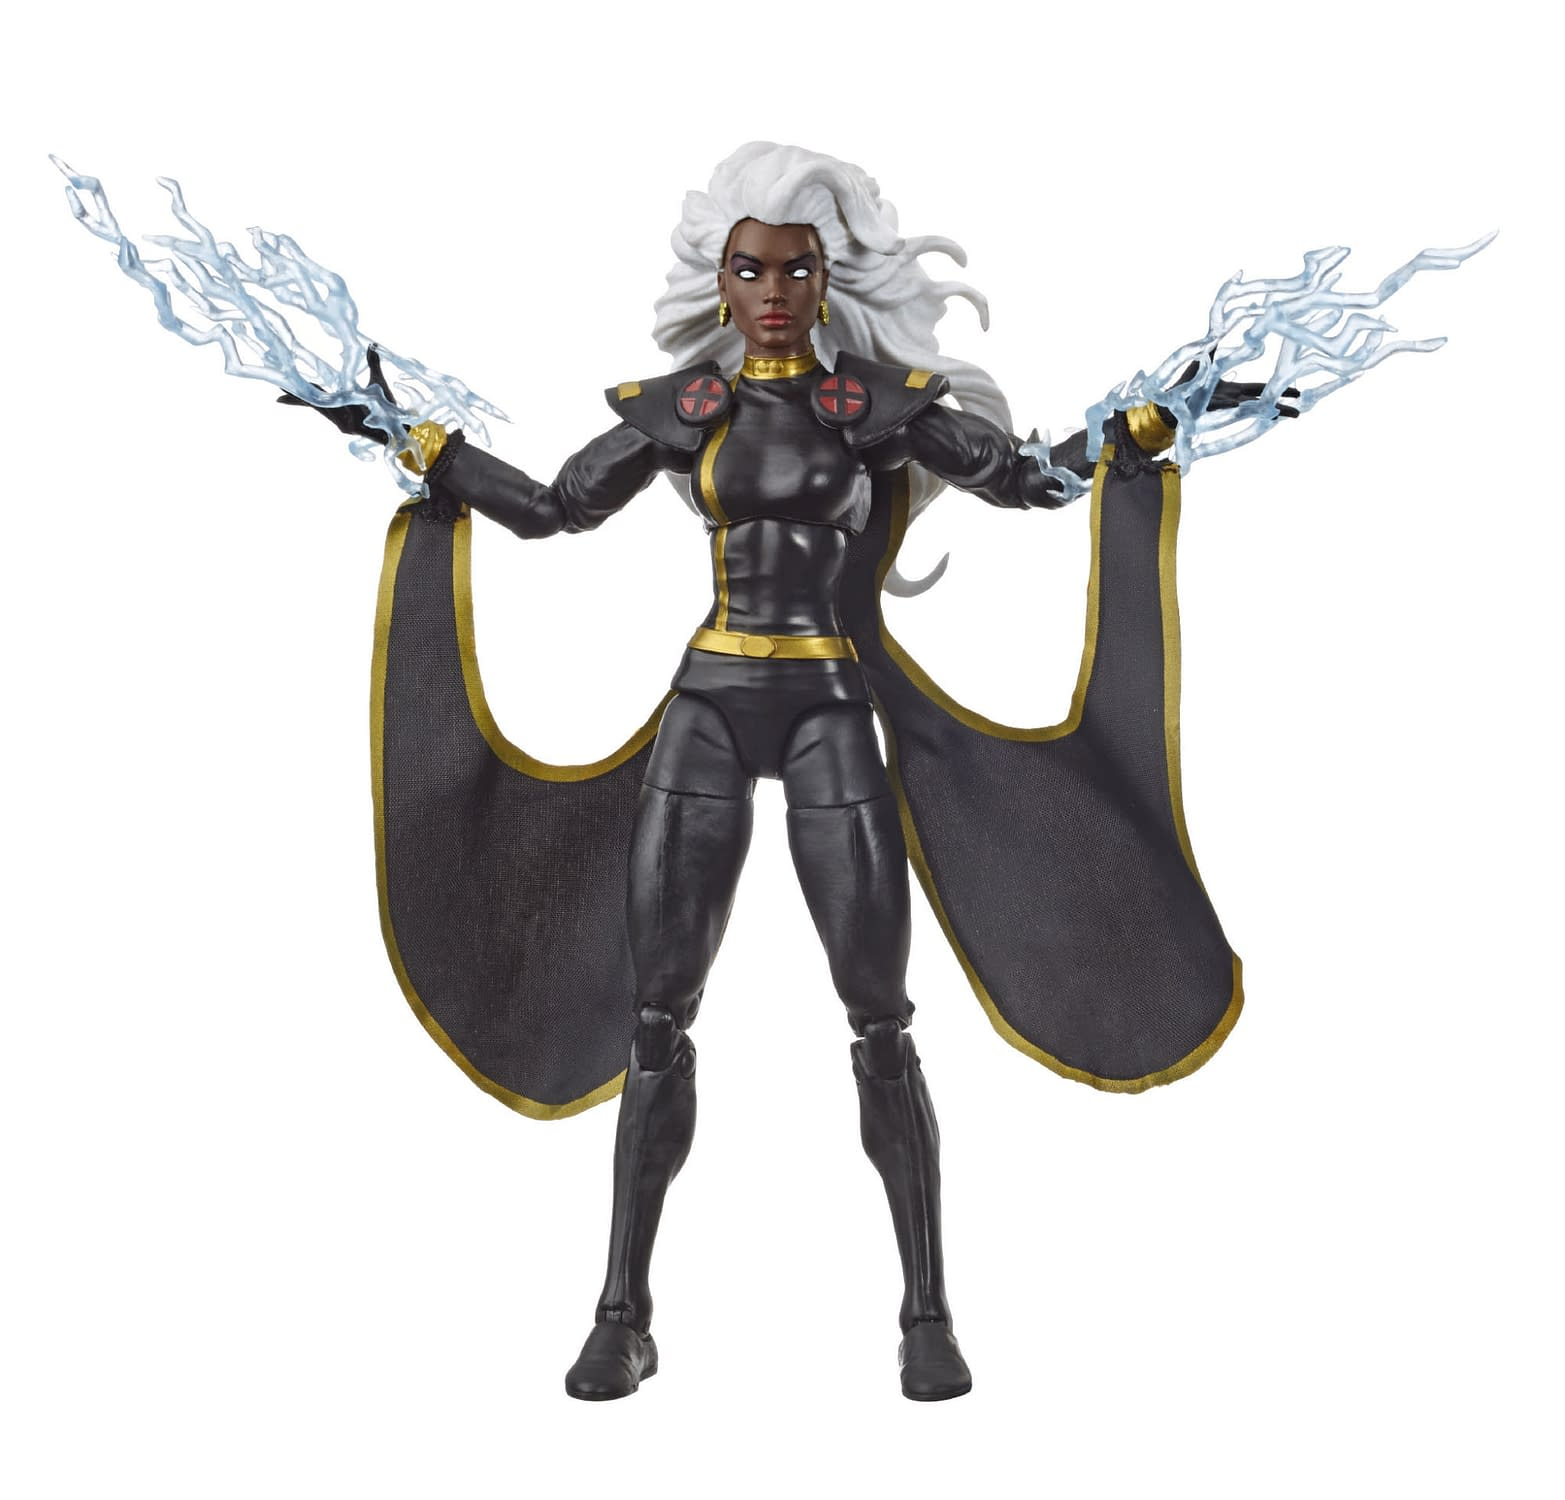 Marvel Legends Gets Cuckoo with New X-Men Figures